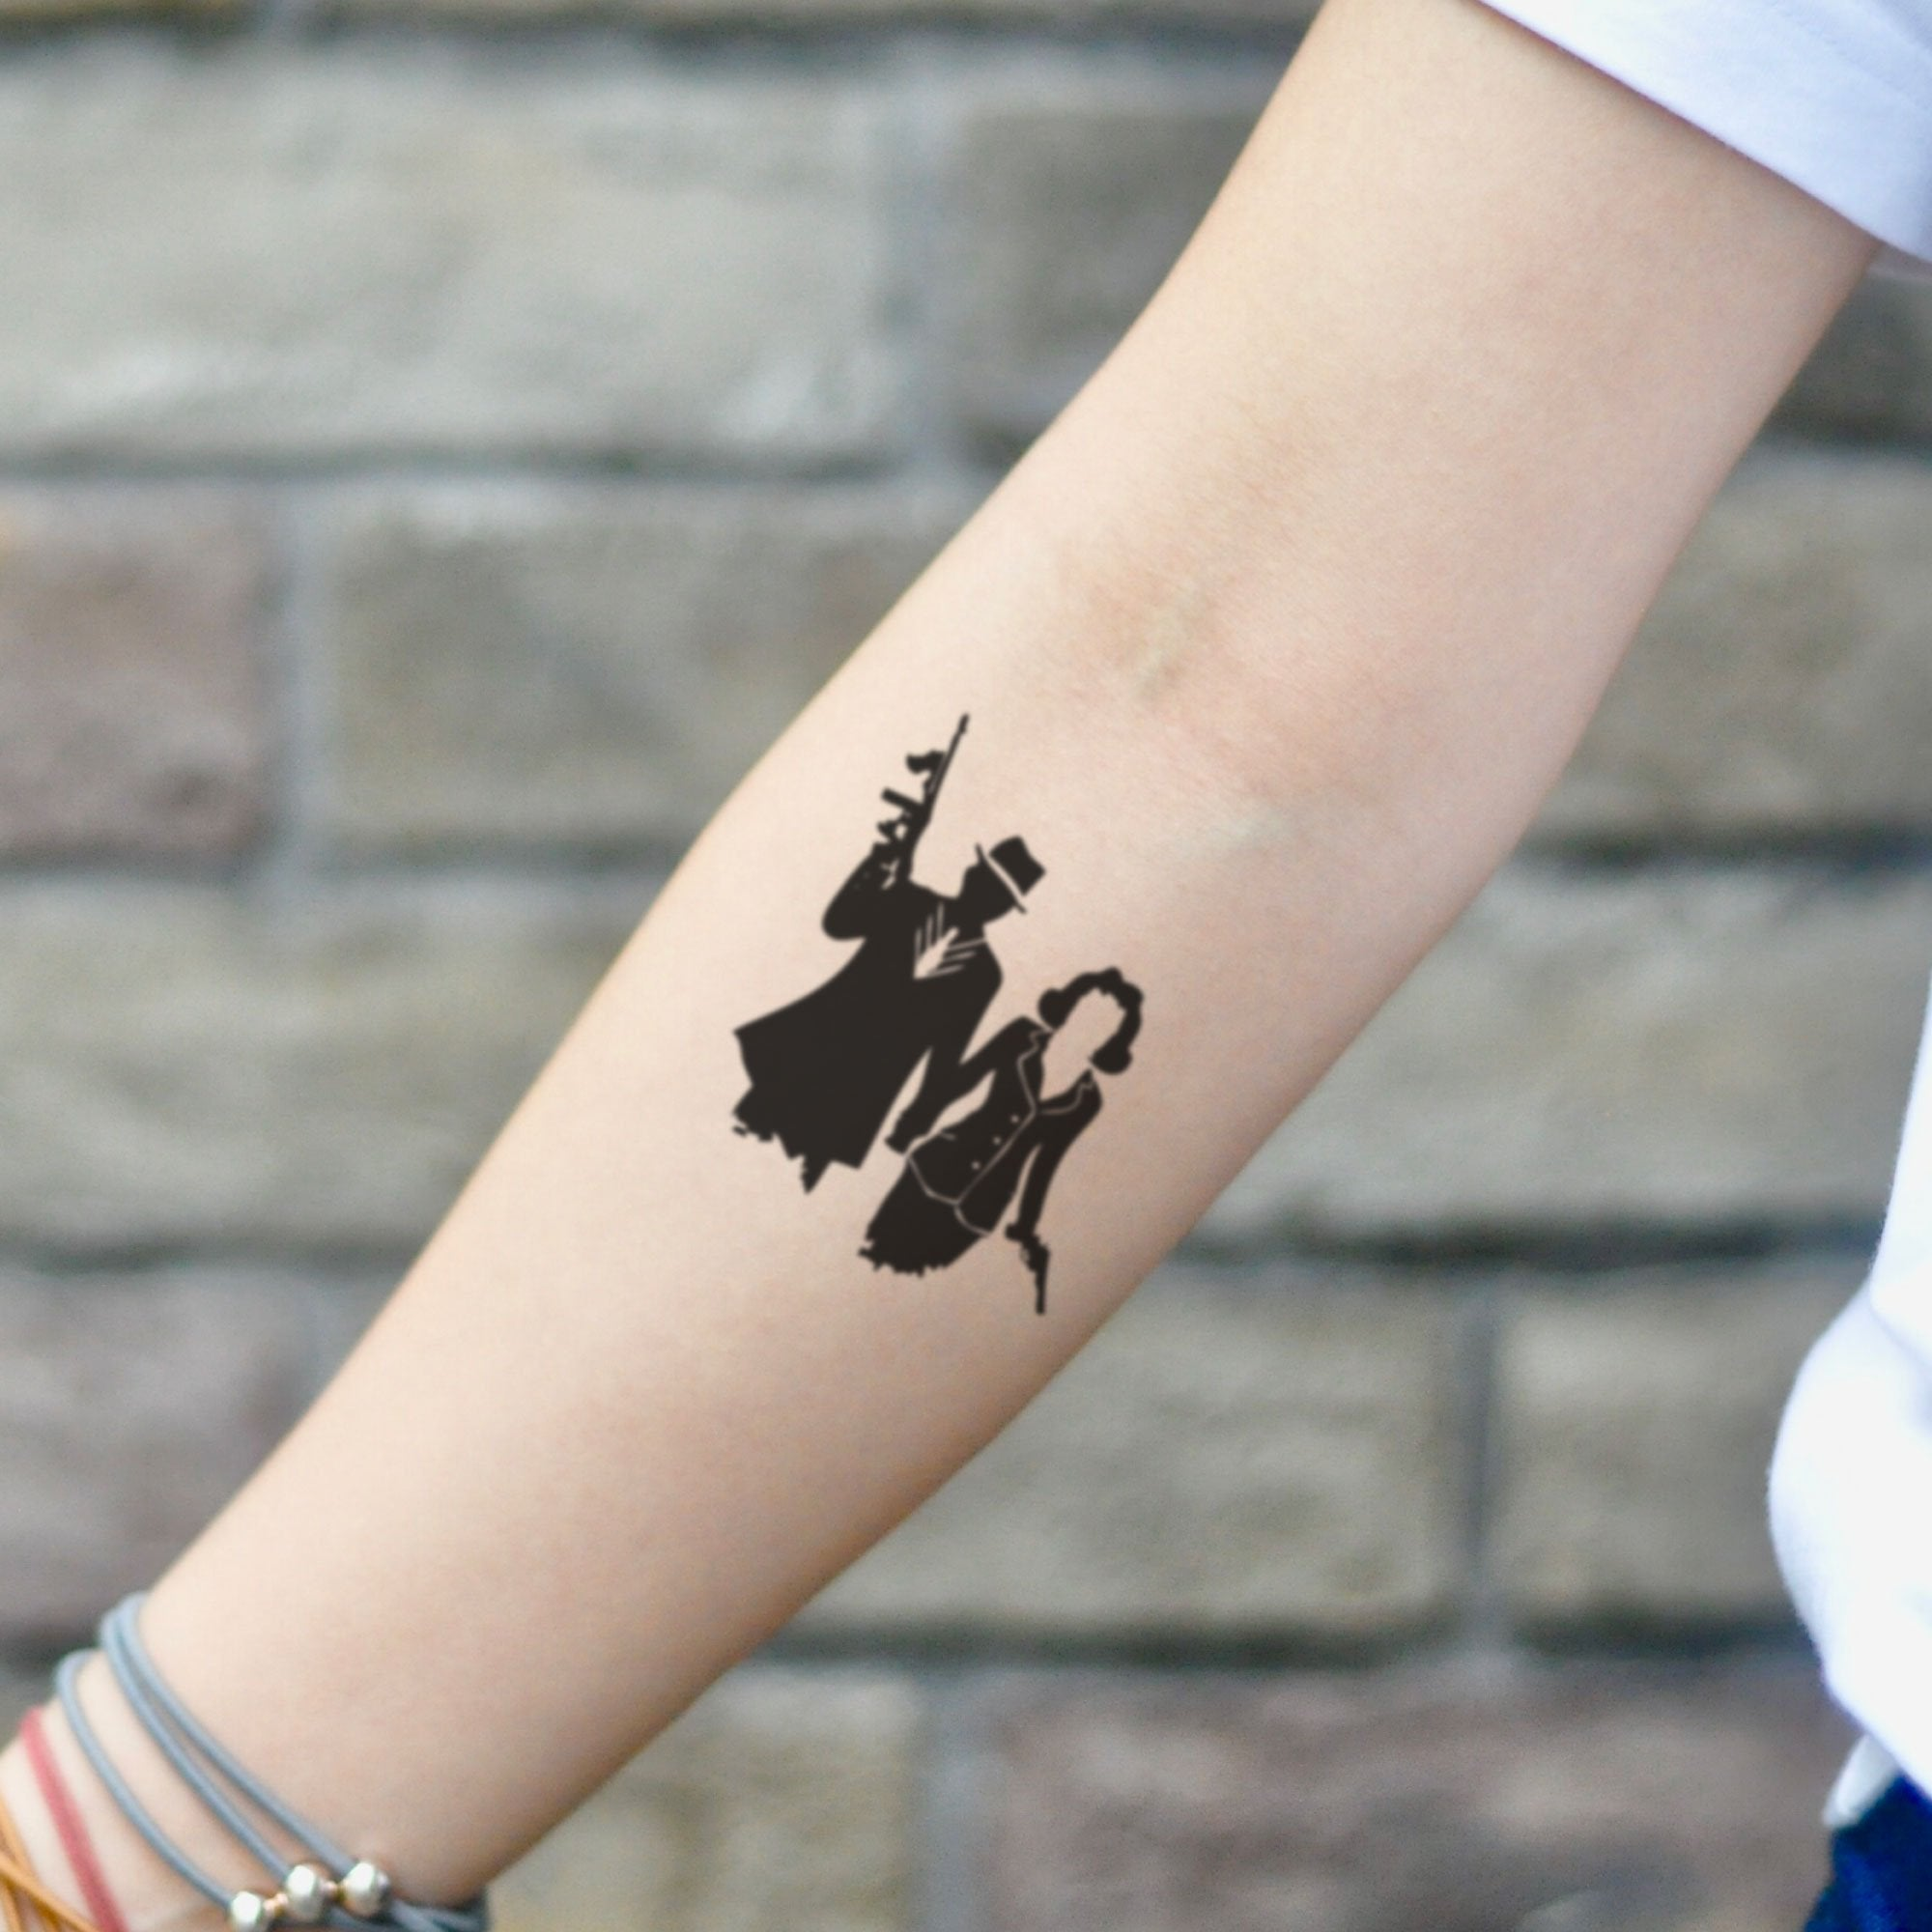 Bonnie And Clyde Tattoo: Bonnie And Clyde Temporary Tattoo Sticker